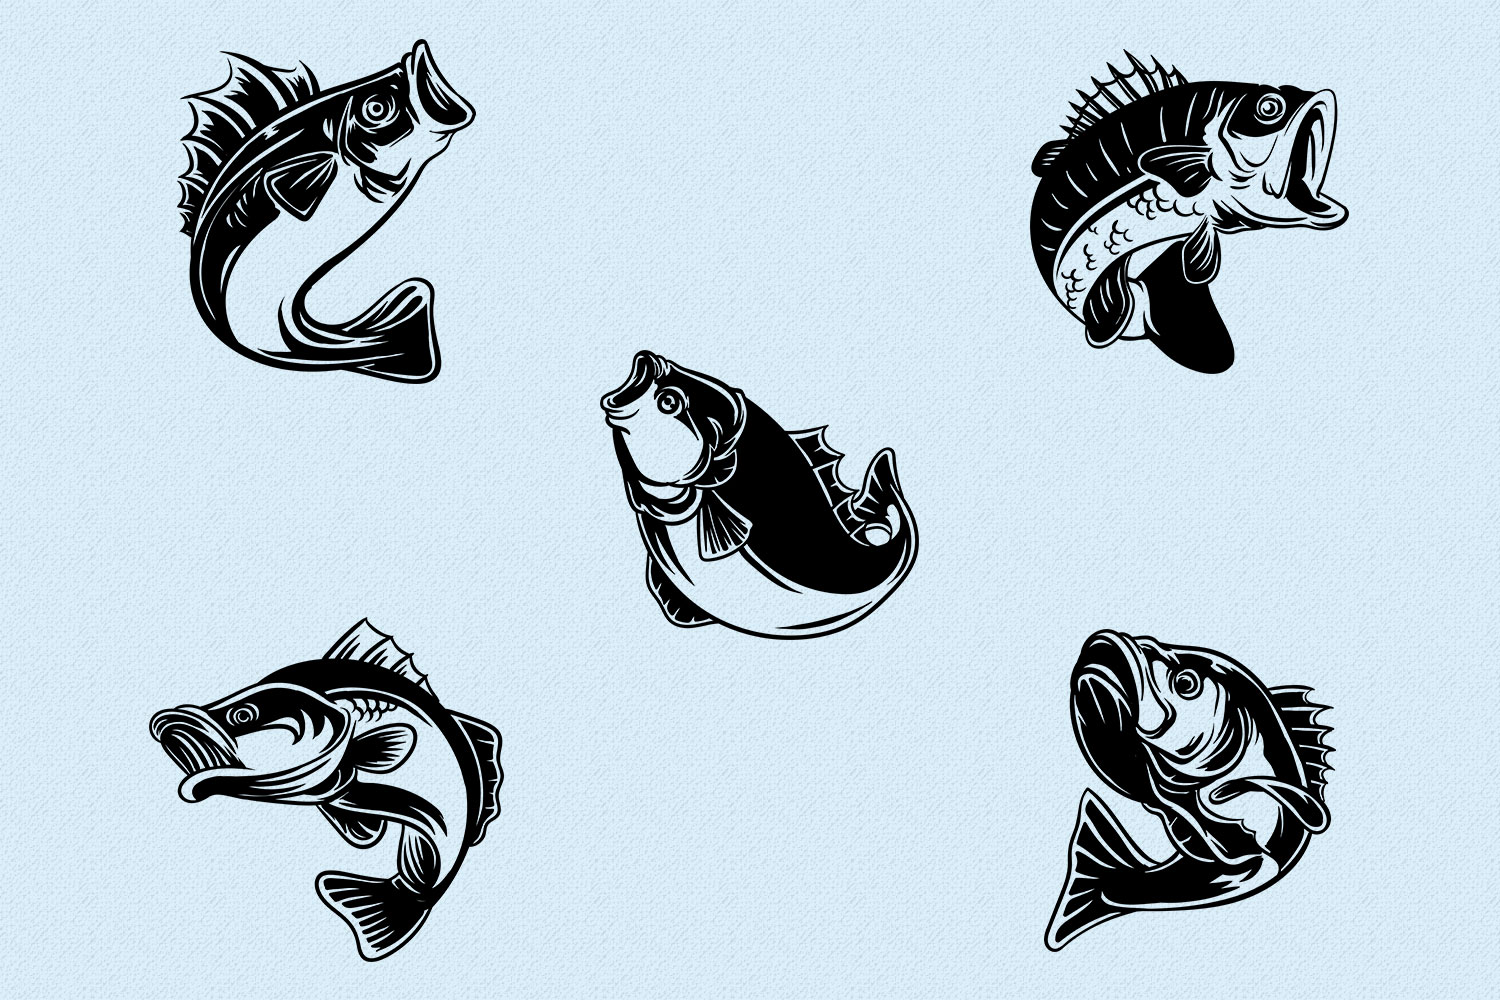 10 Bass Fish Vintage Illustration Collection in Vector example image 2